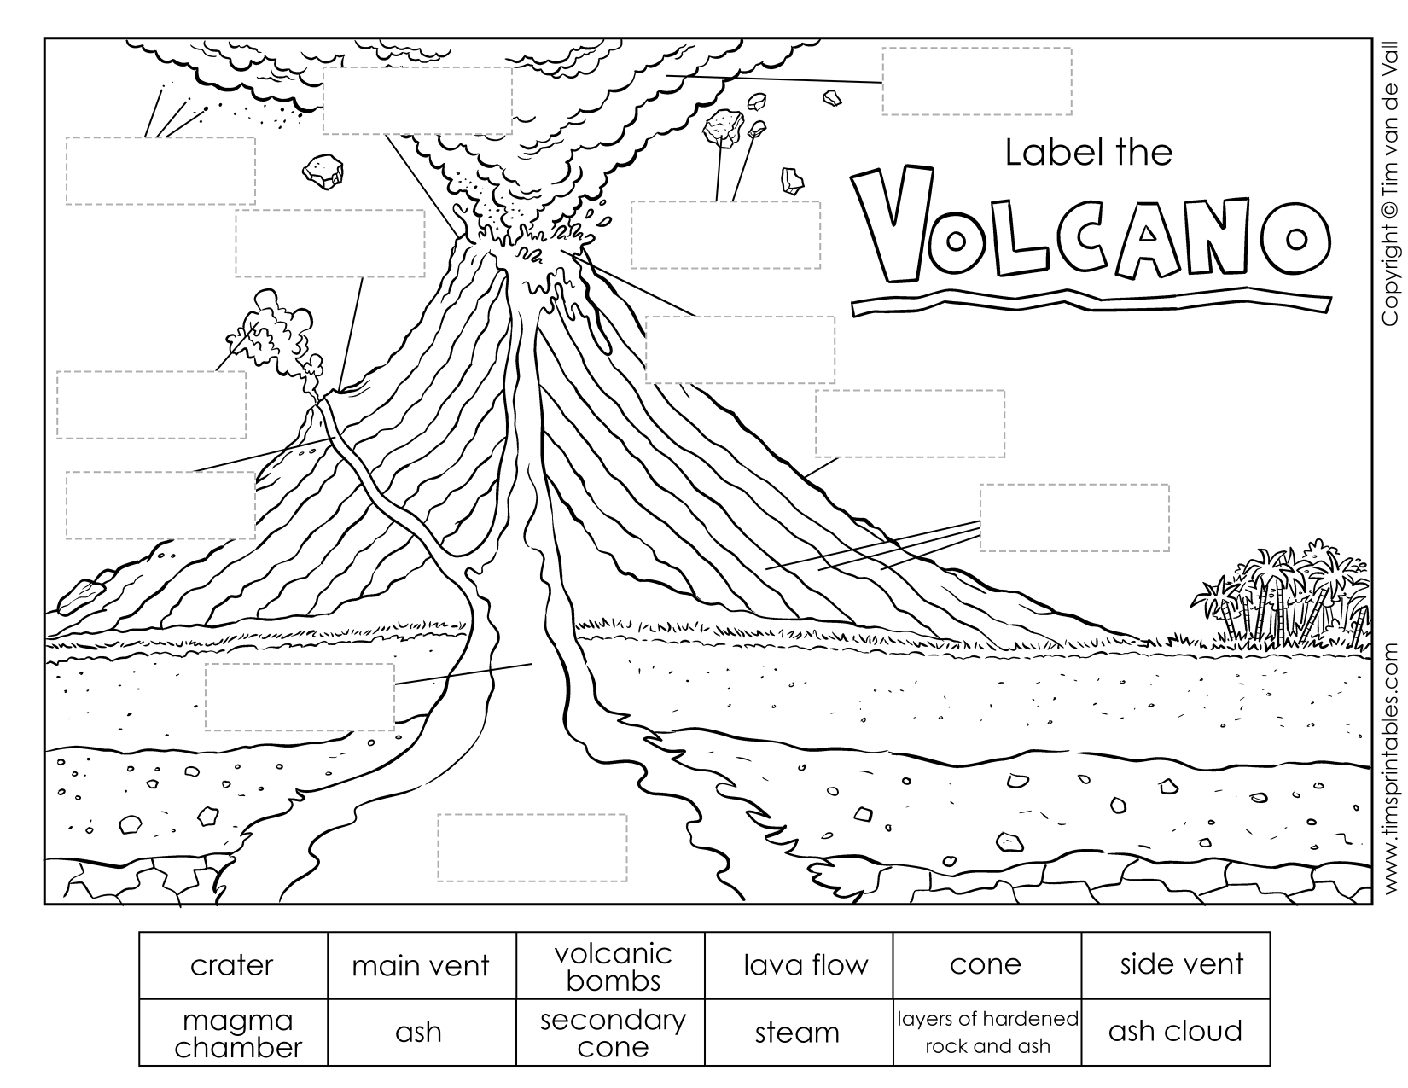 Volcano Parts Worksheet For Kids - Tim's Printables | Printable Volcano Worksheets